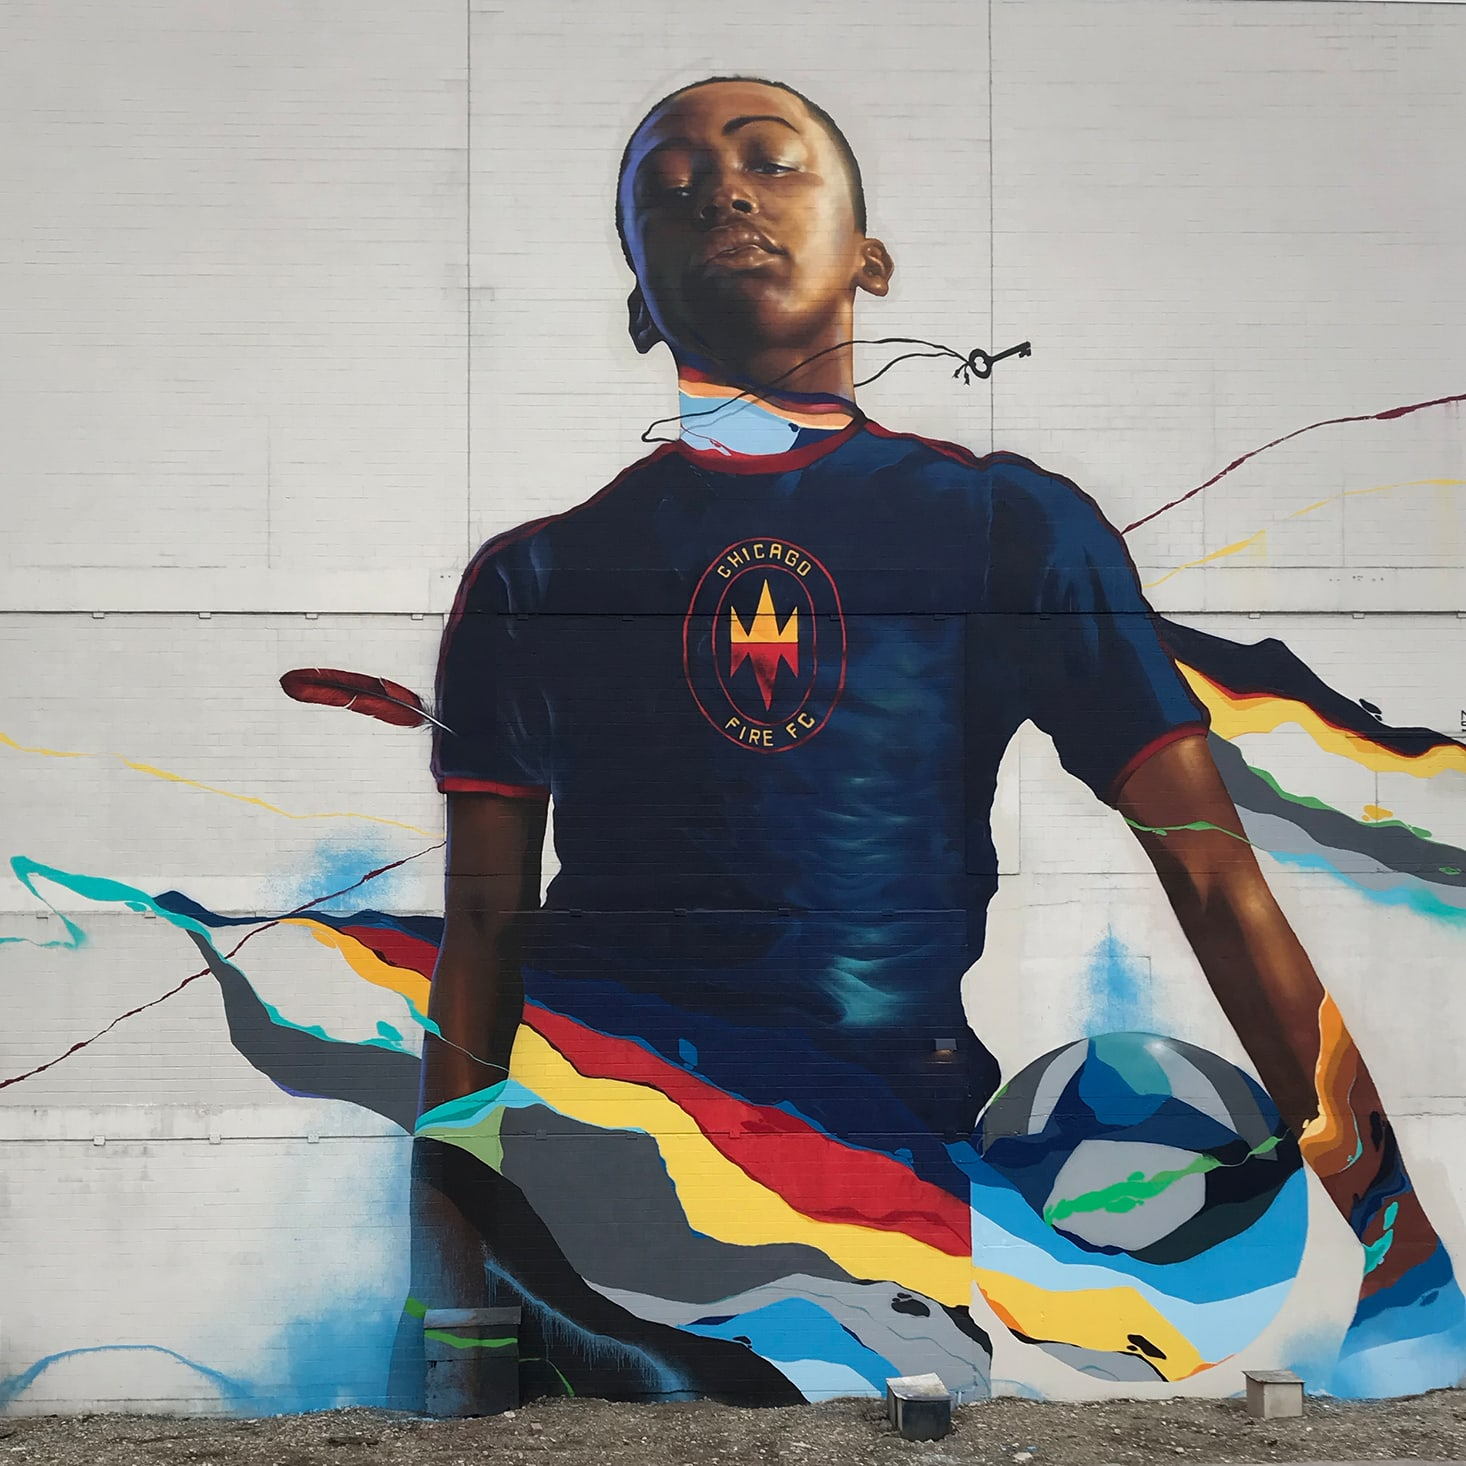 painted mural of young athlete